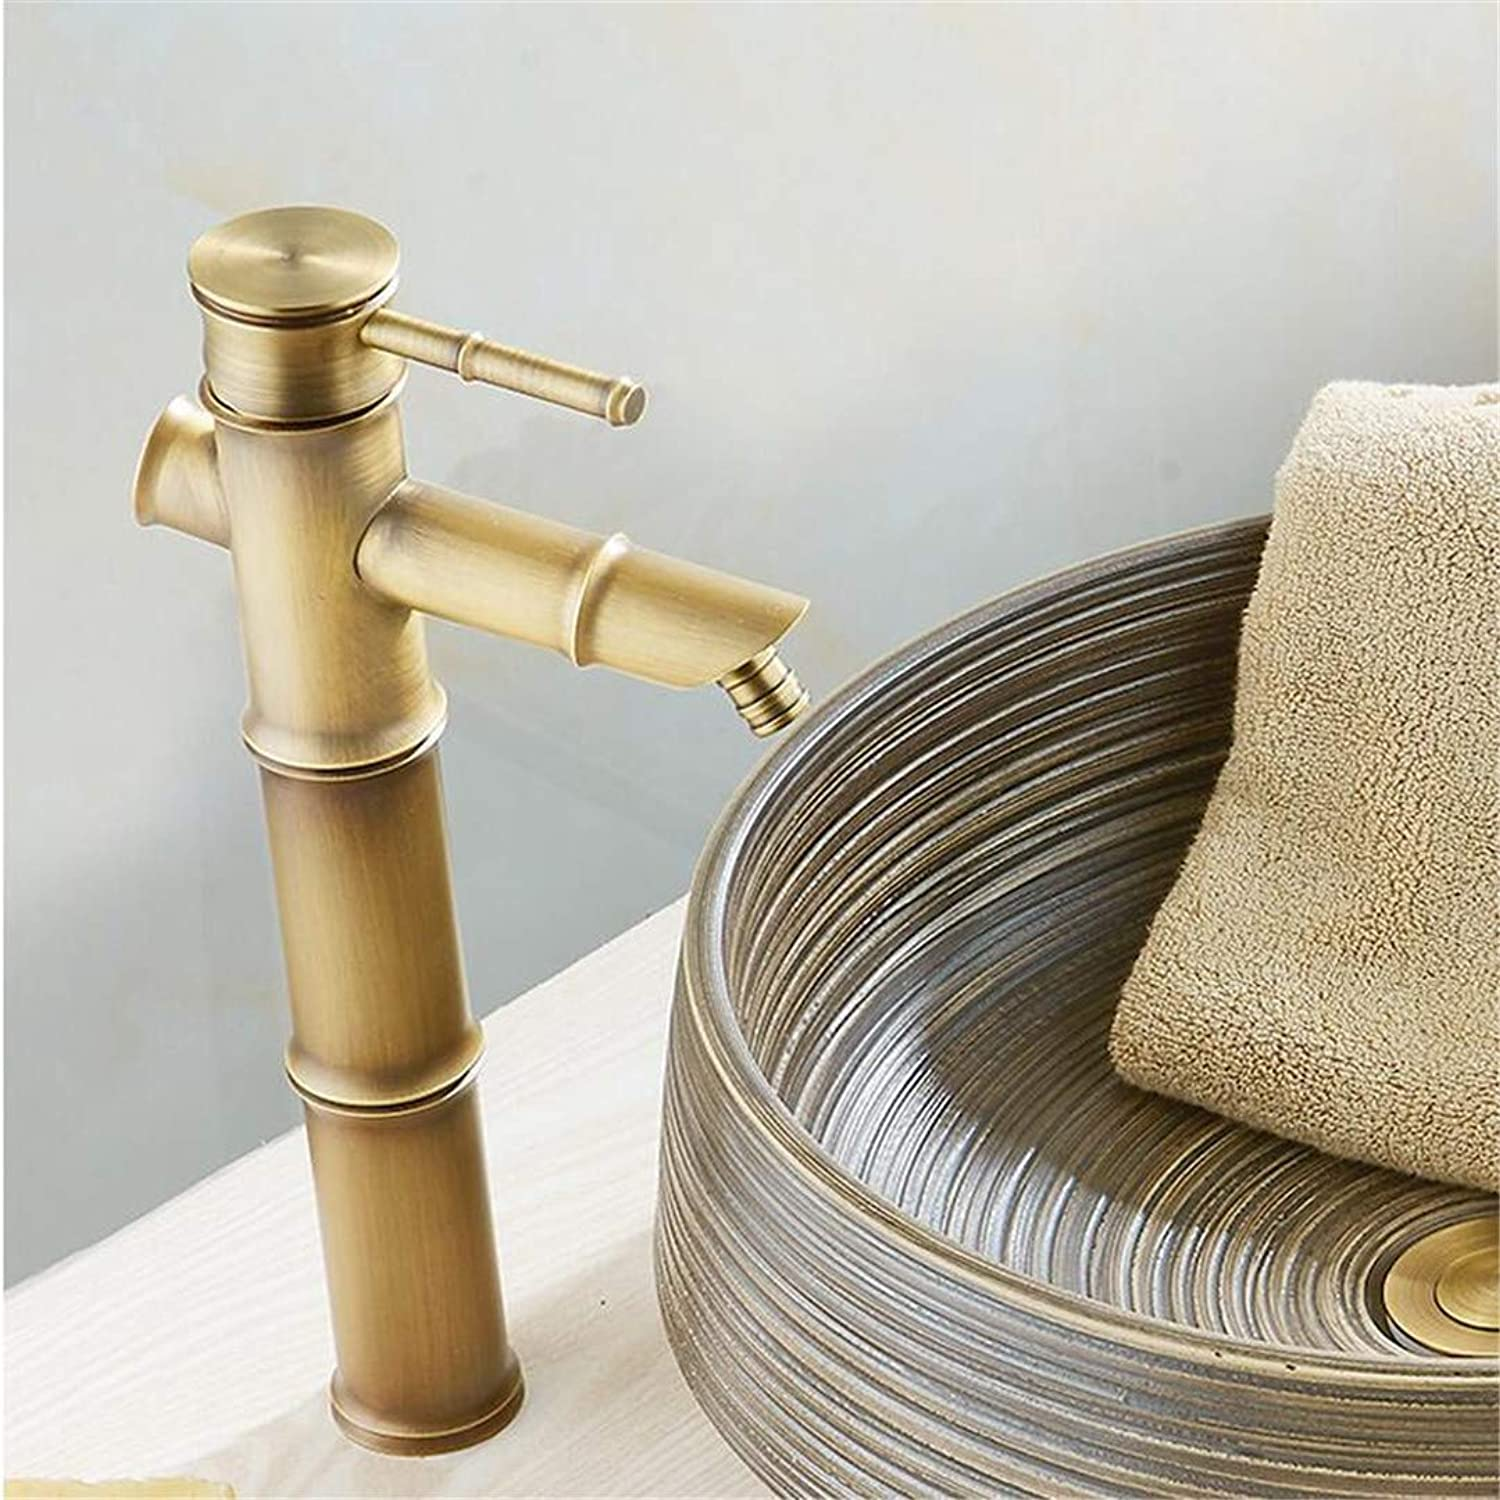 Basin Faucet Basin Vintage Mixer Taps Antique Brass Water Tap Hot and Cold